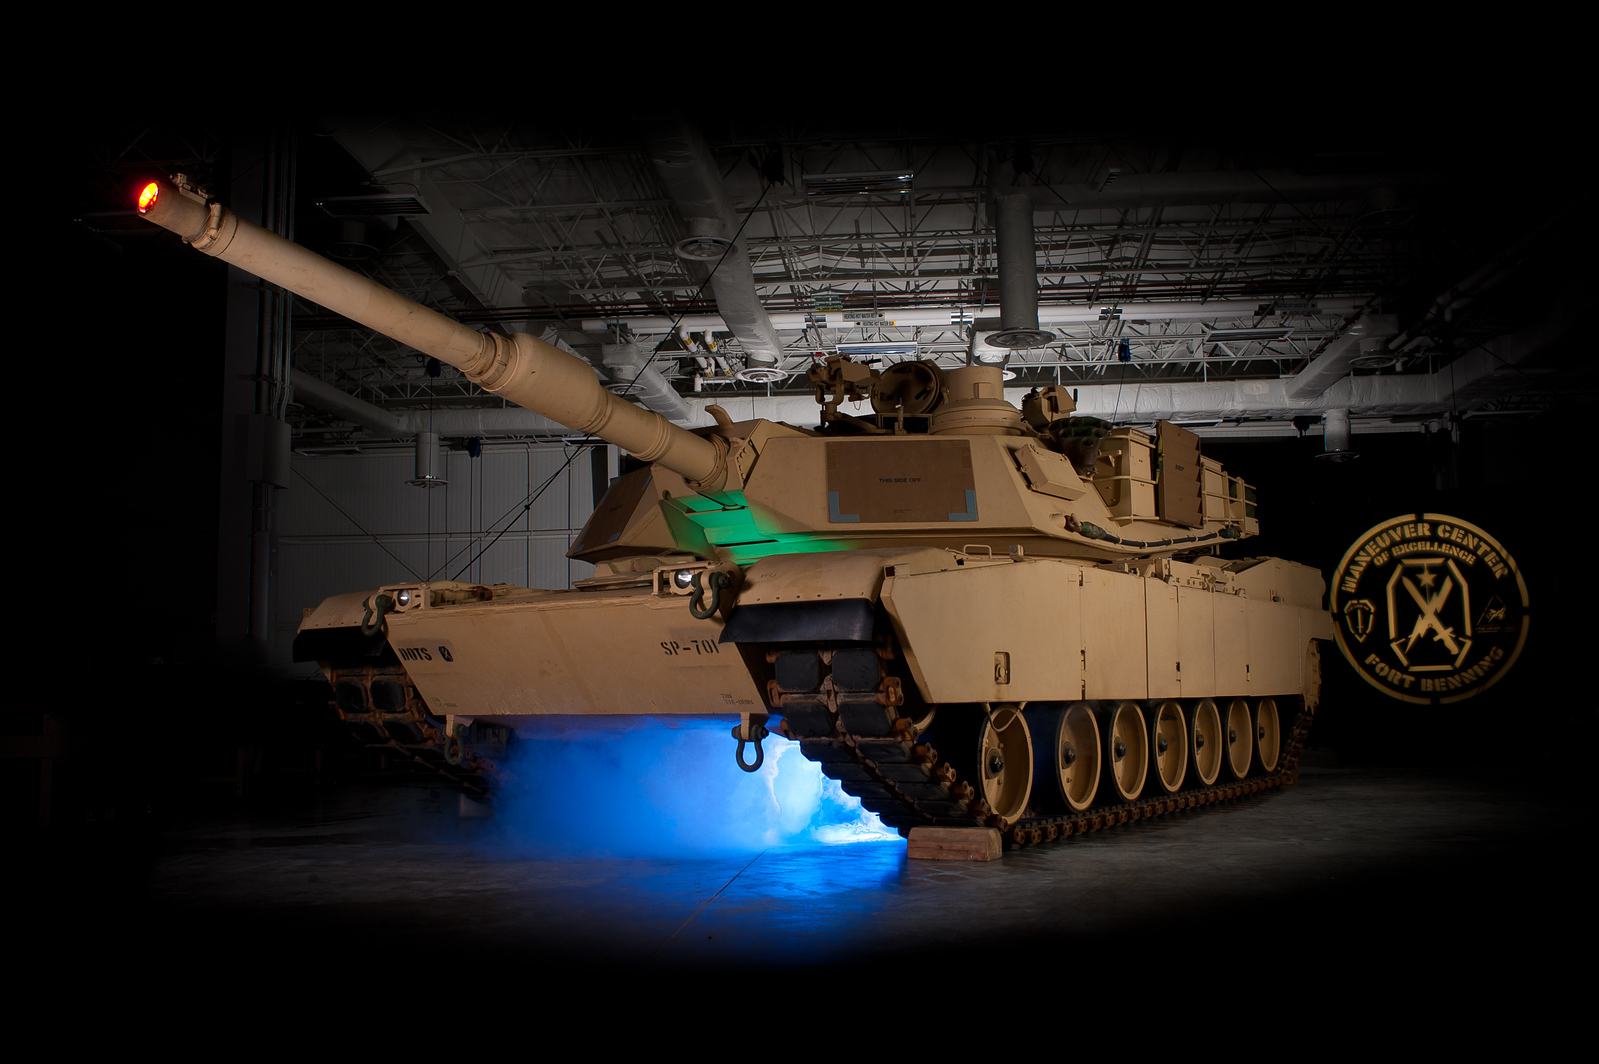 "31AUG2010 - The first M1A2SEP at Fort Benning, GA is photographed inside the new 130,000 square foot VMI (Vehicle Maintenance Instruction) Facility at Harmony Church.  The motor pool outside this building utilizes 800,000 cubic yards of concrete to support these 70 ton tanks.  Photo by John David Helms.  <a href=""http://www.JohnDavidHelms.com"">http://www.JohnDavidHelms.com</a>"